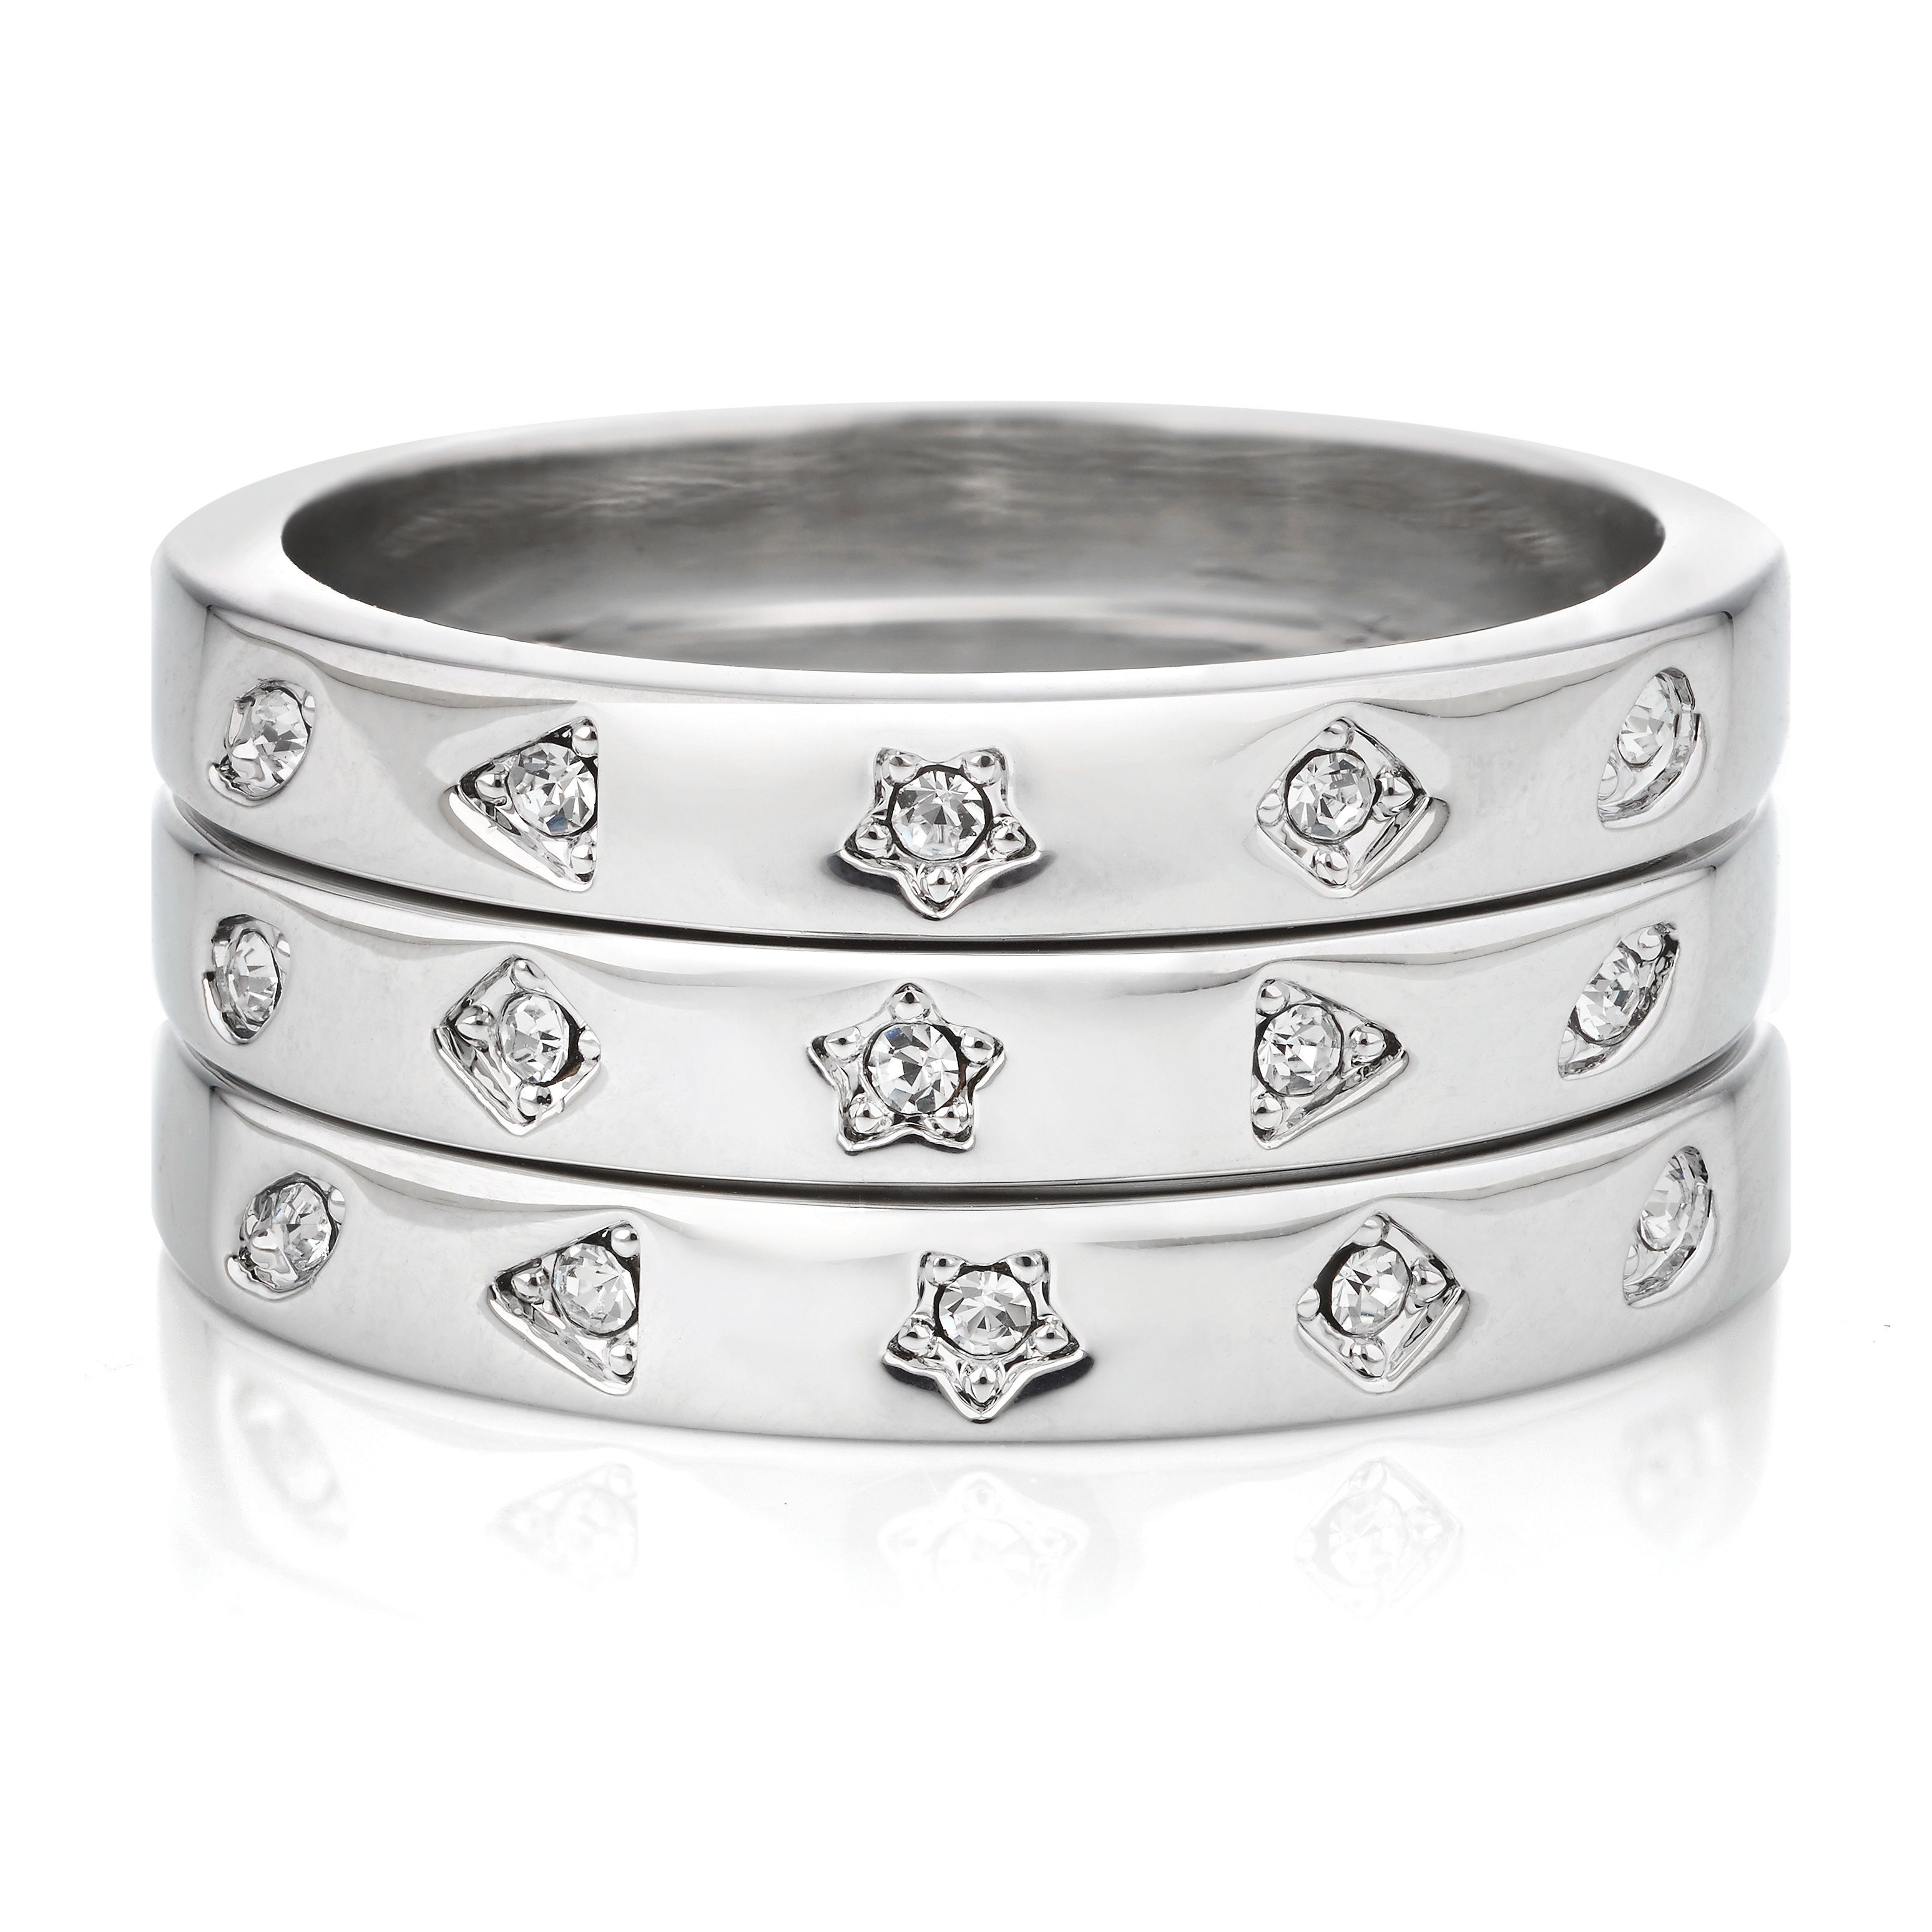 Buckley London Winslet Stacking Rings Trio